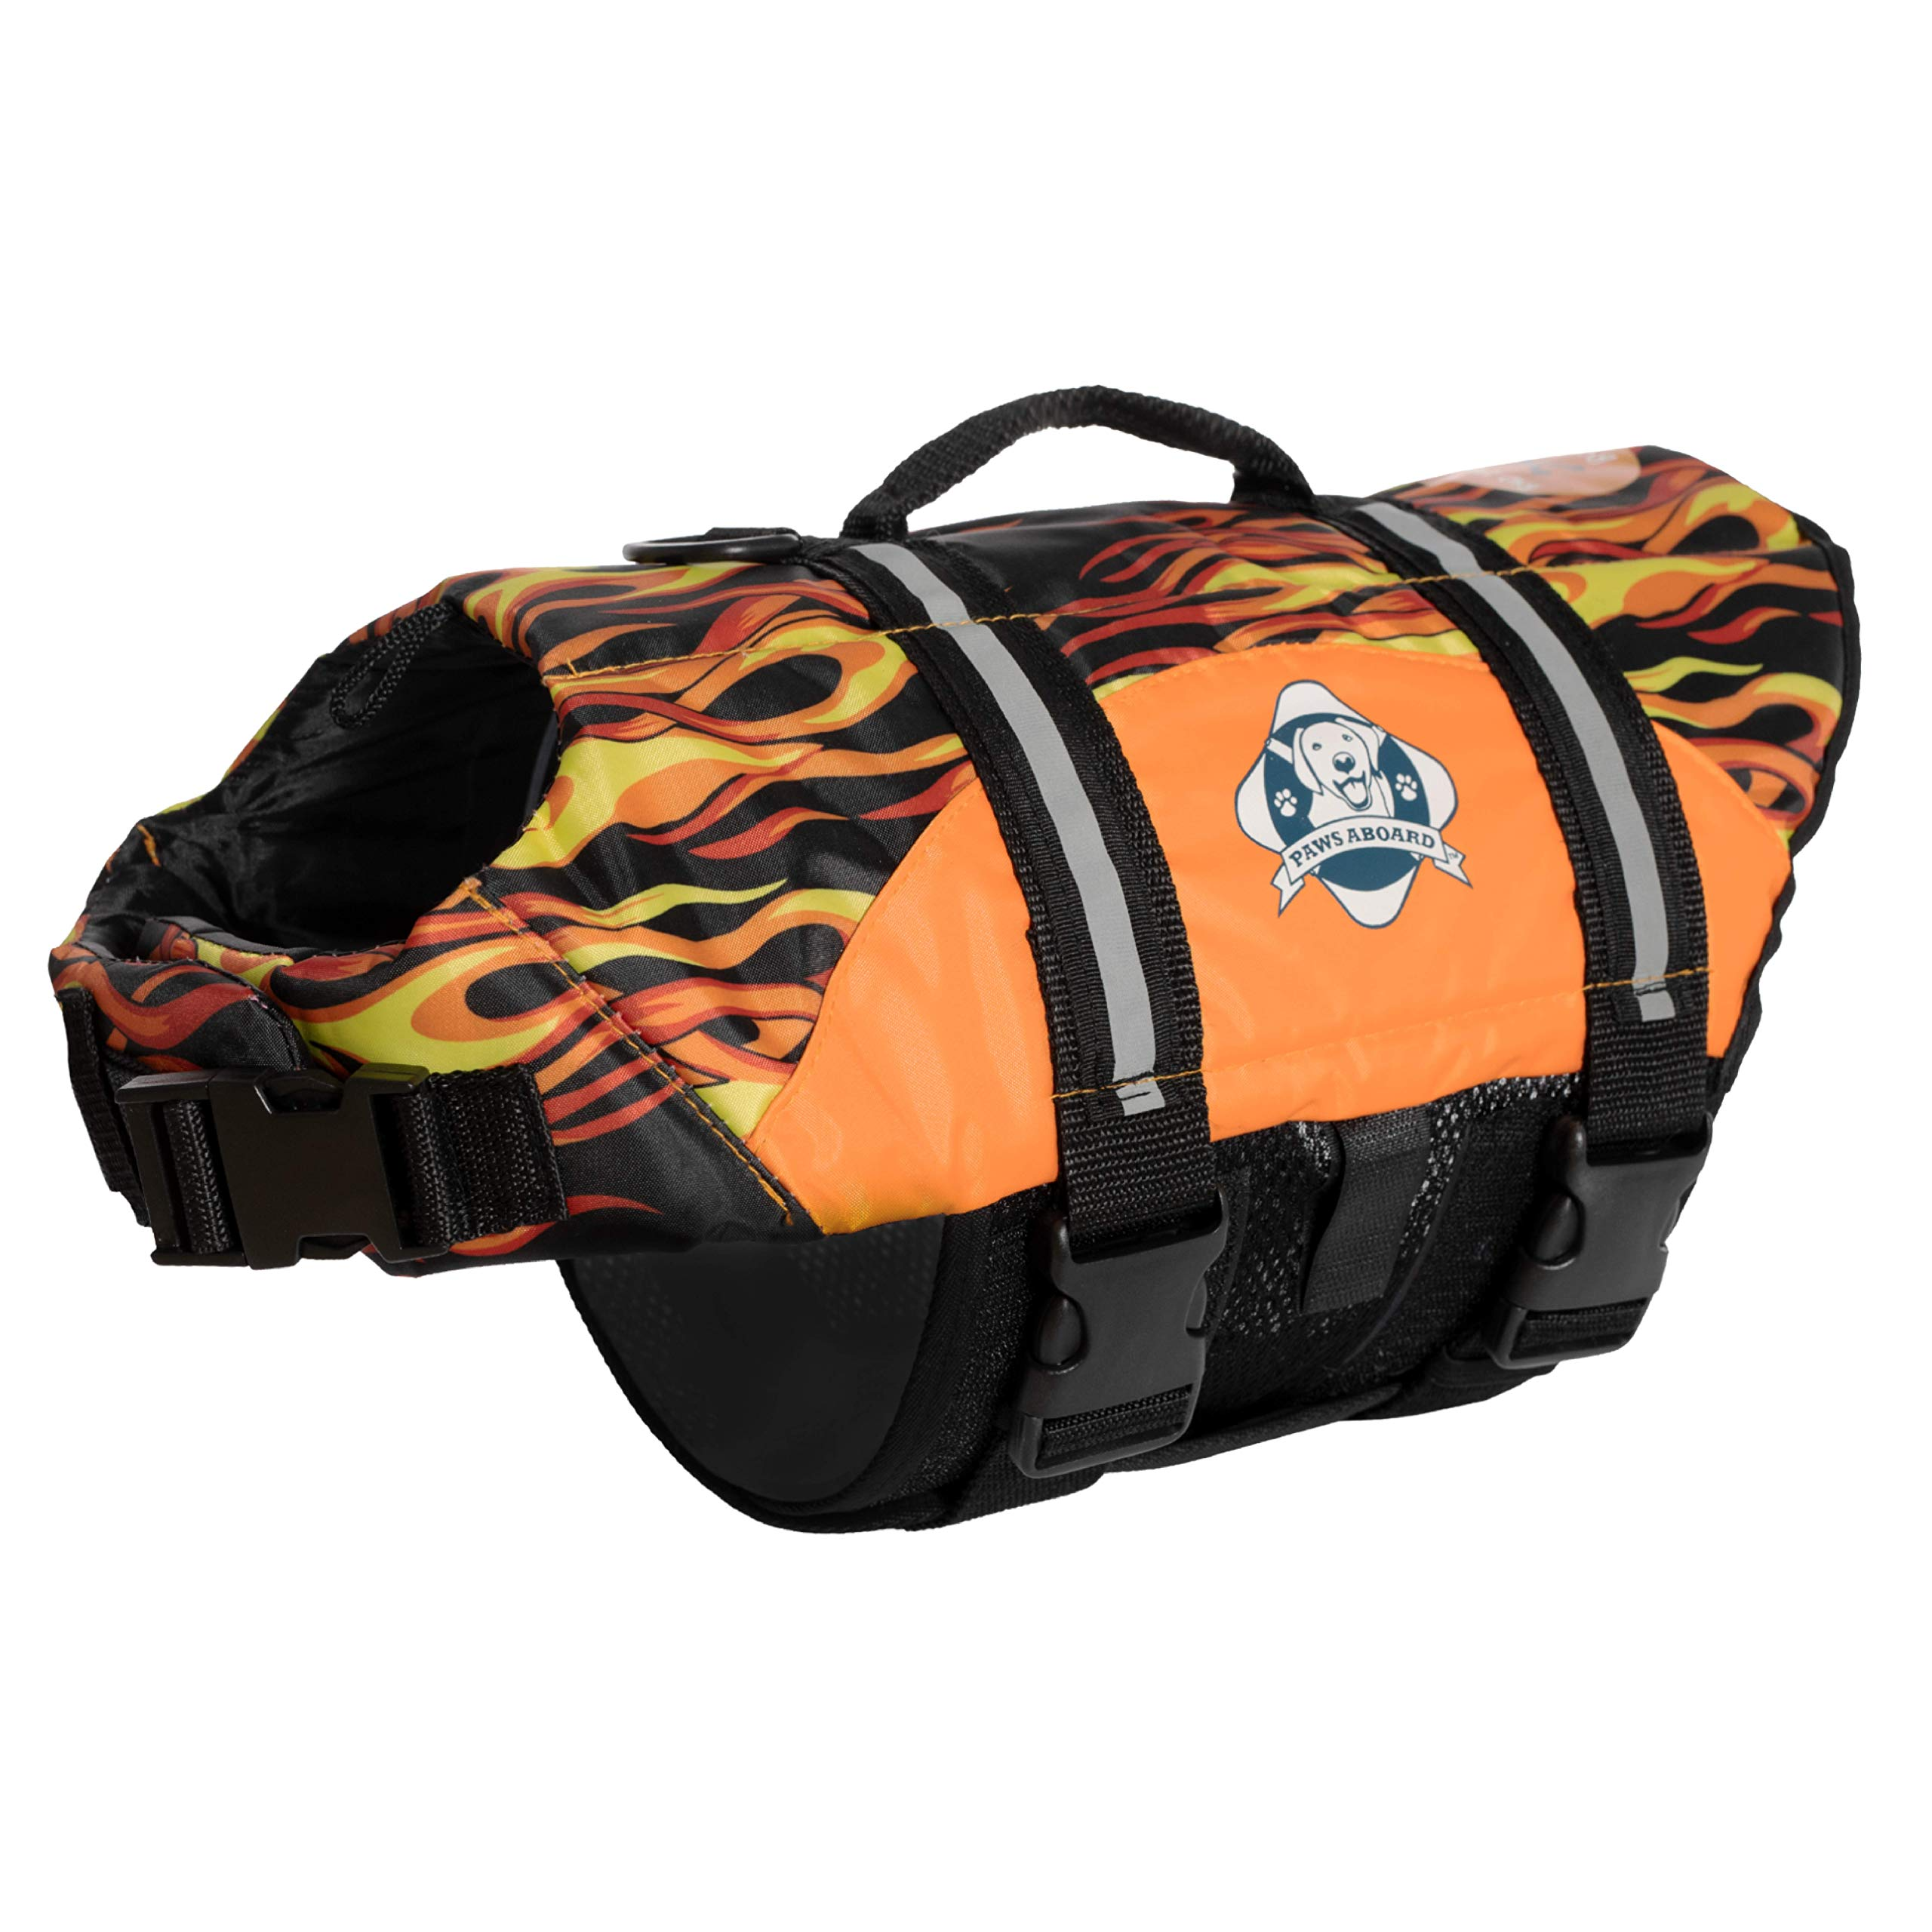 Fido Pet Products Paws Aboard Doggy Life Jacket, Large, Racing Flames